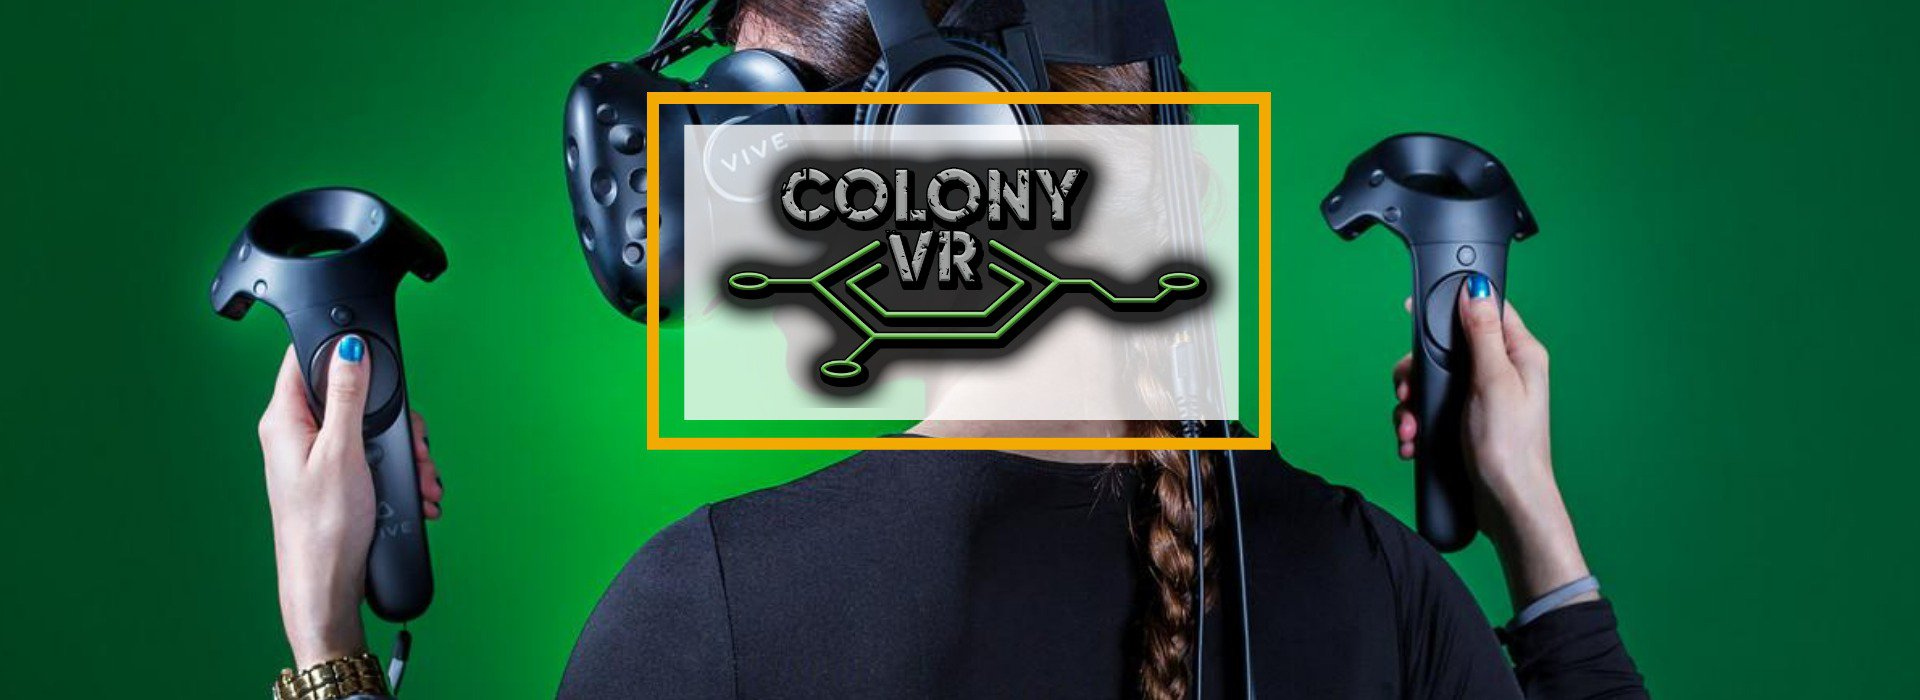 Colony VR Giveaway Contest